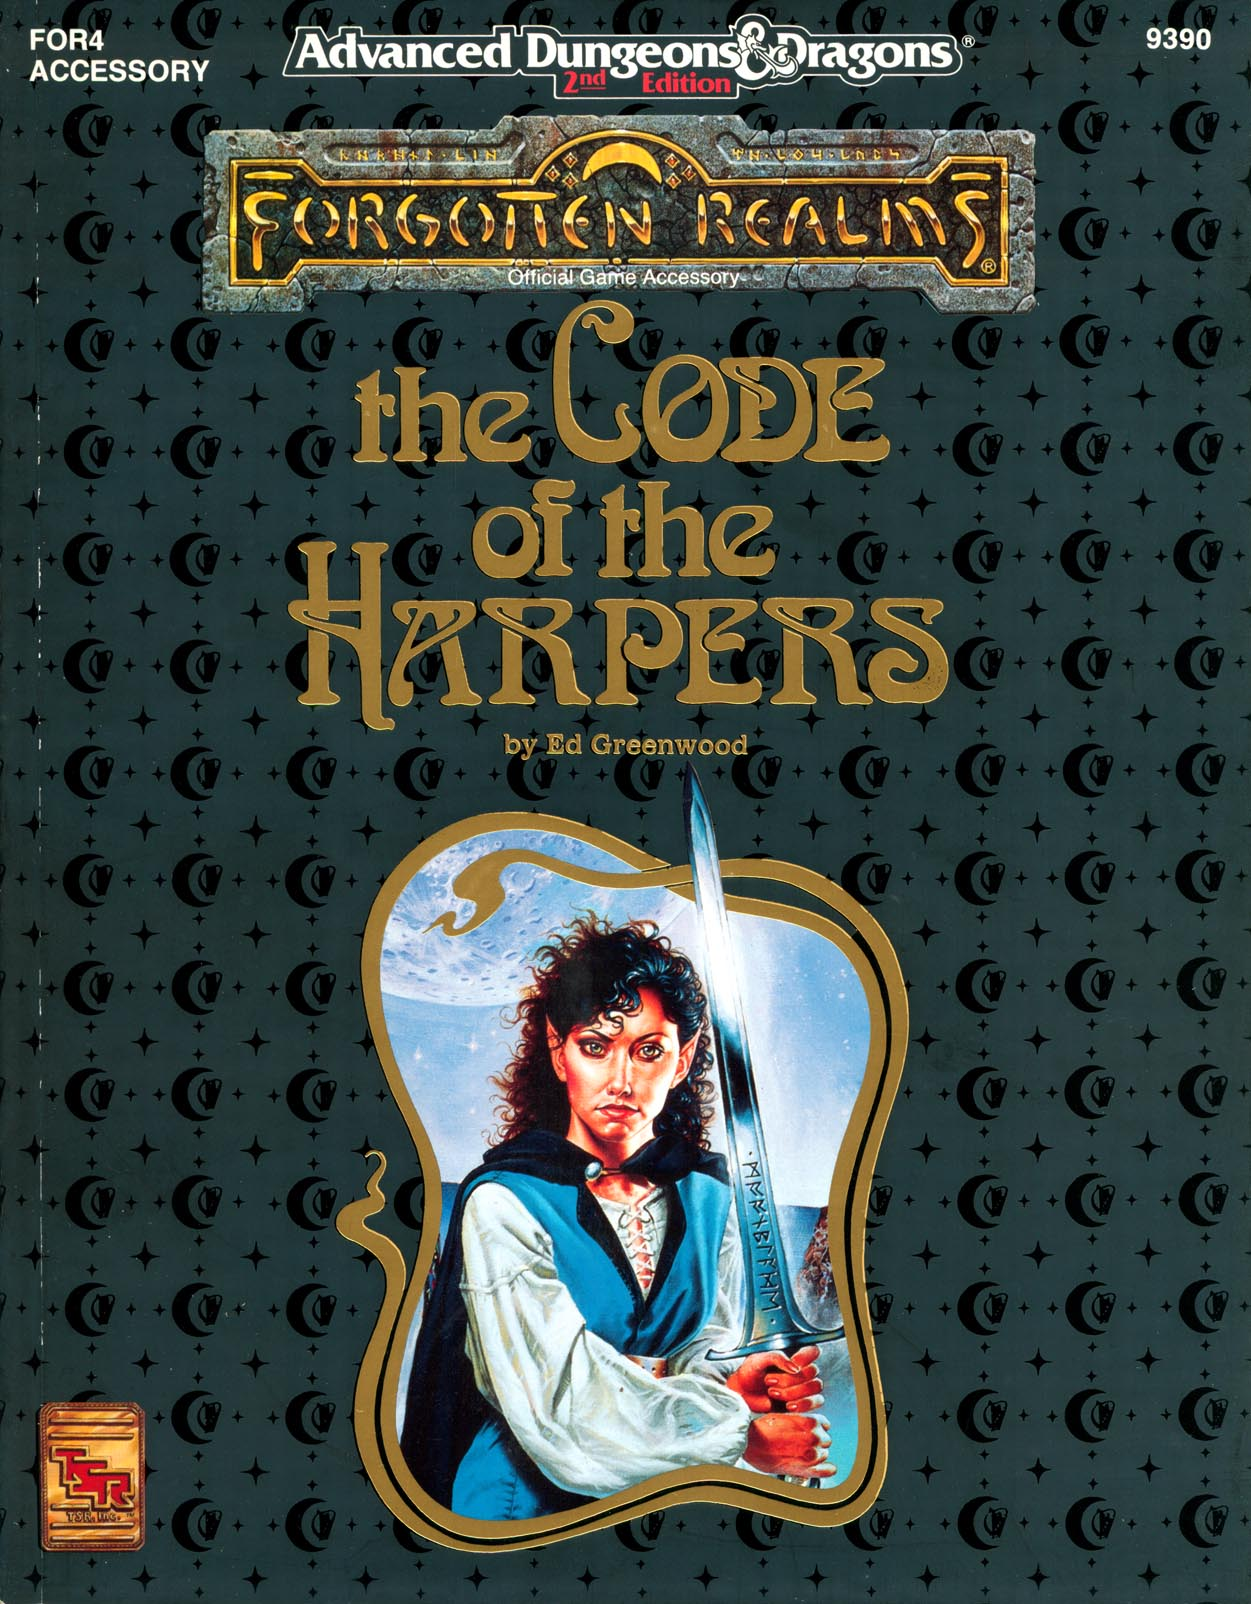 The Code of the Harpers